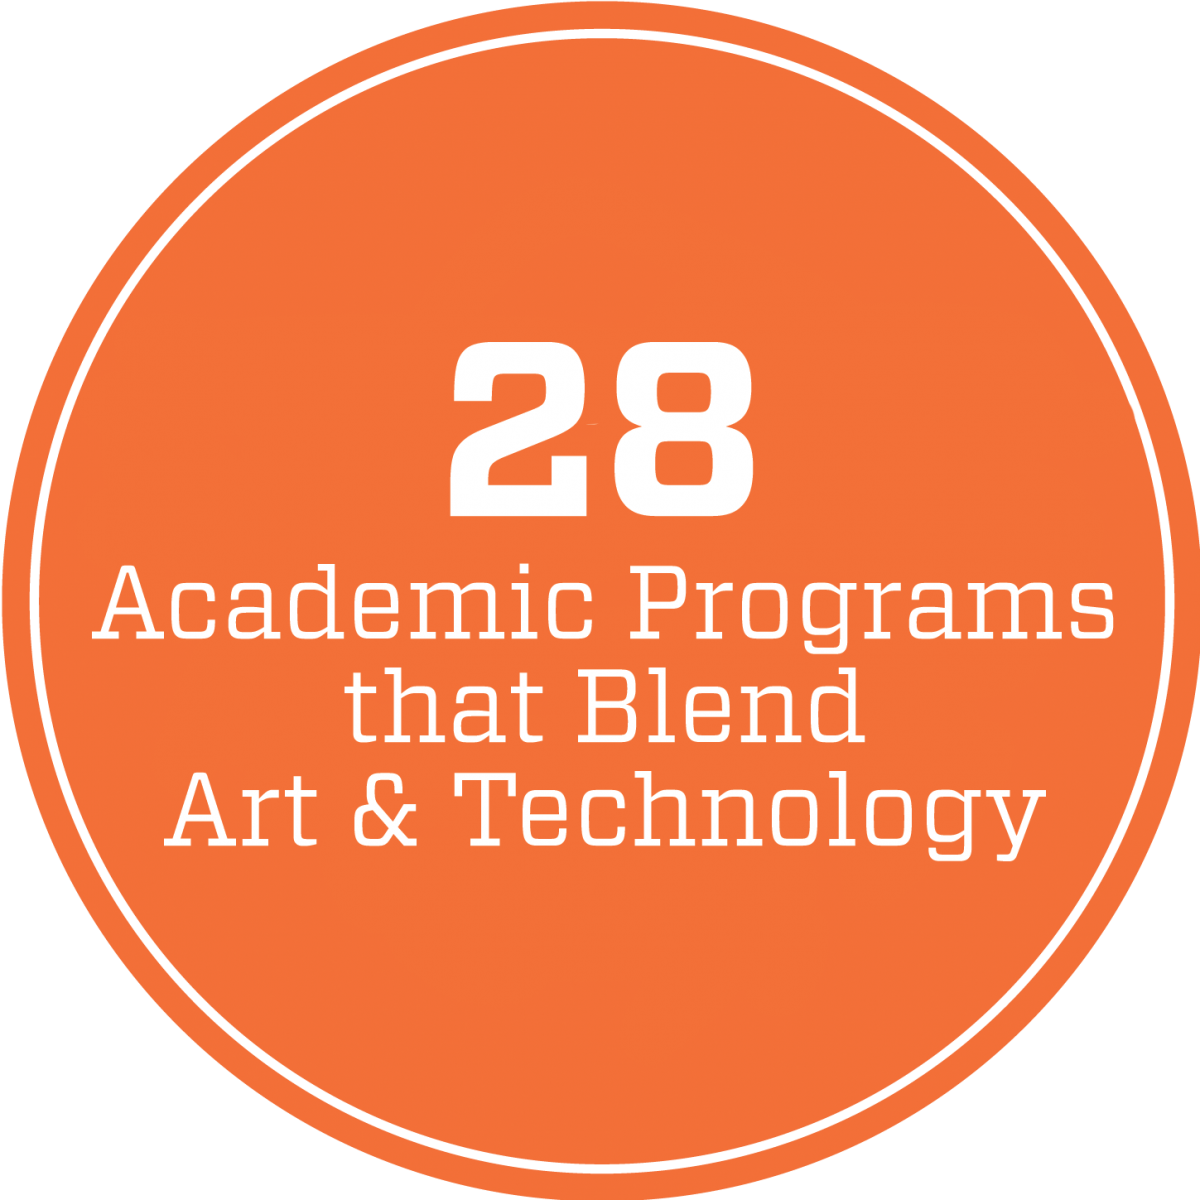 28 academic programs that blend art and technology